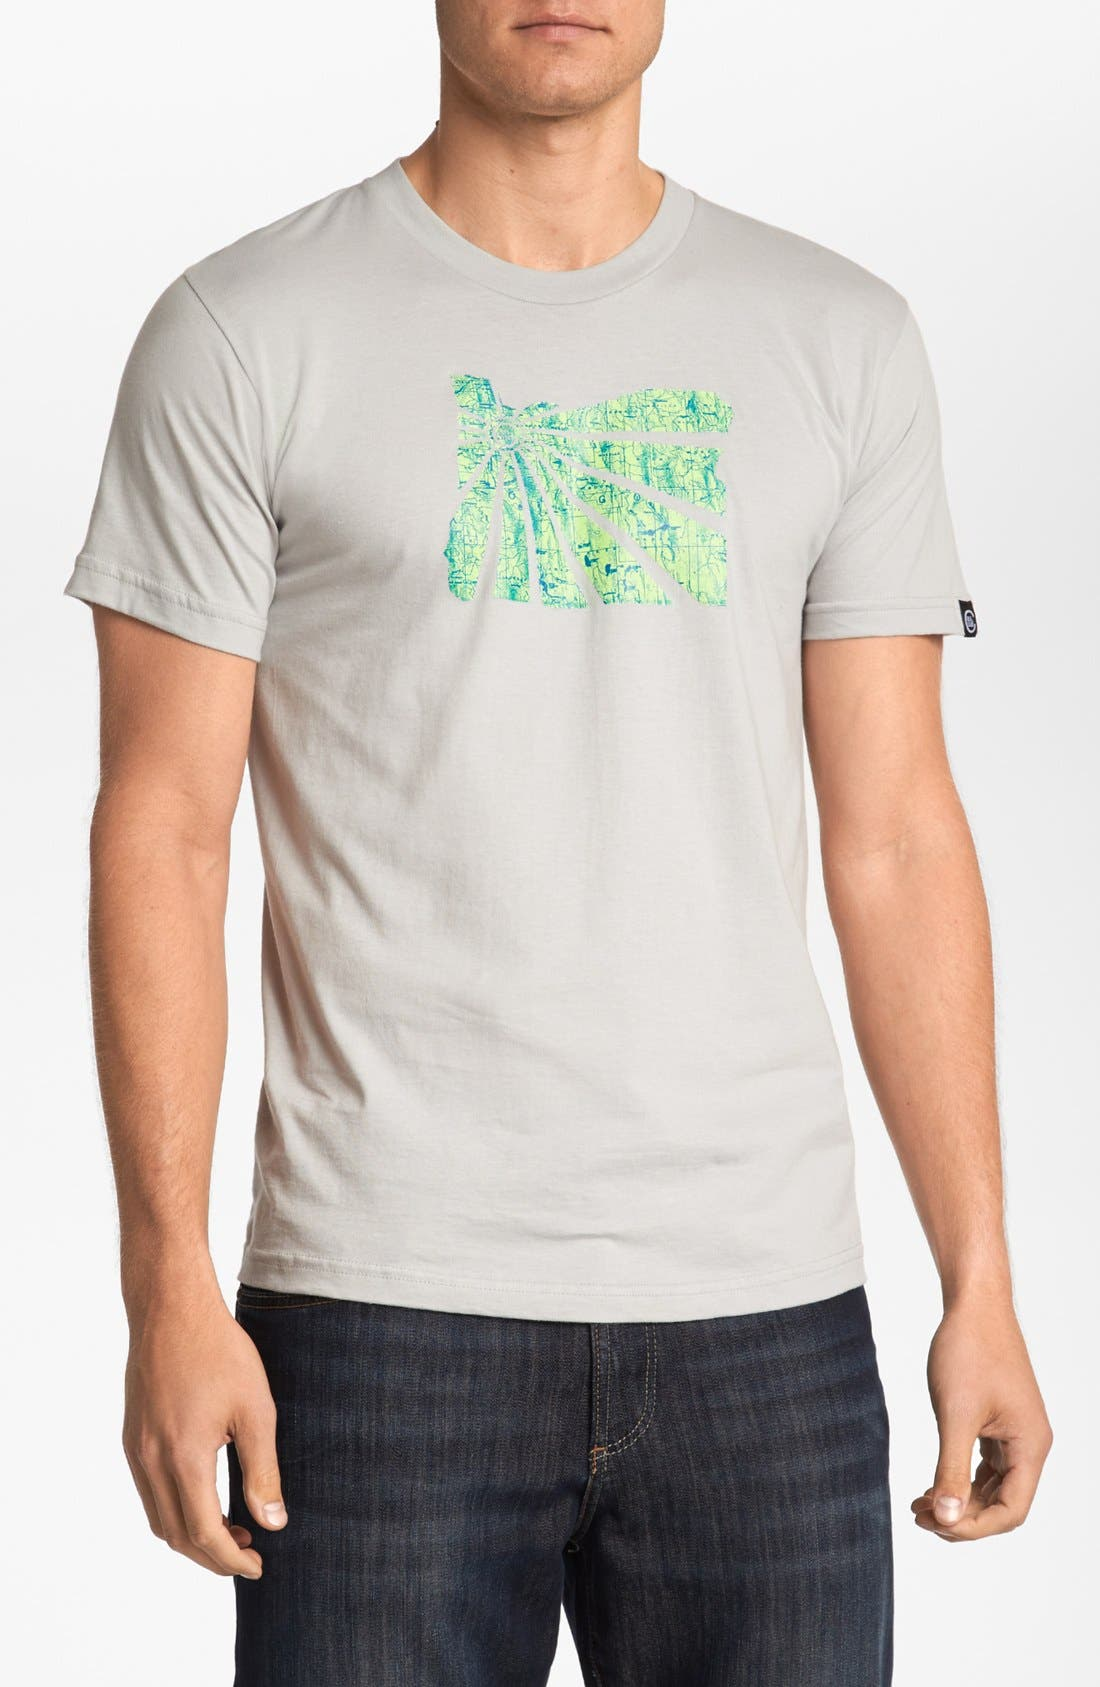 CASUAL INDUSTREES 'OR Brah Map' T-Shirt, Main, color, 045